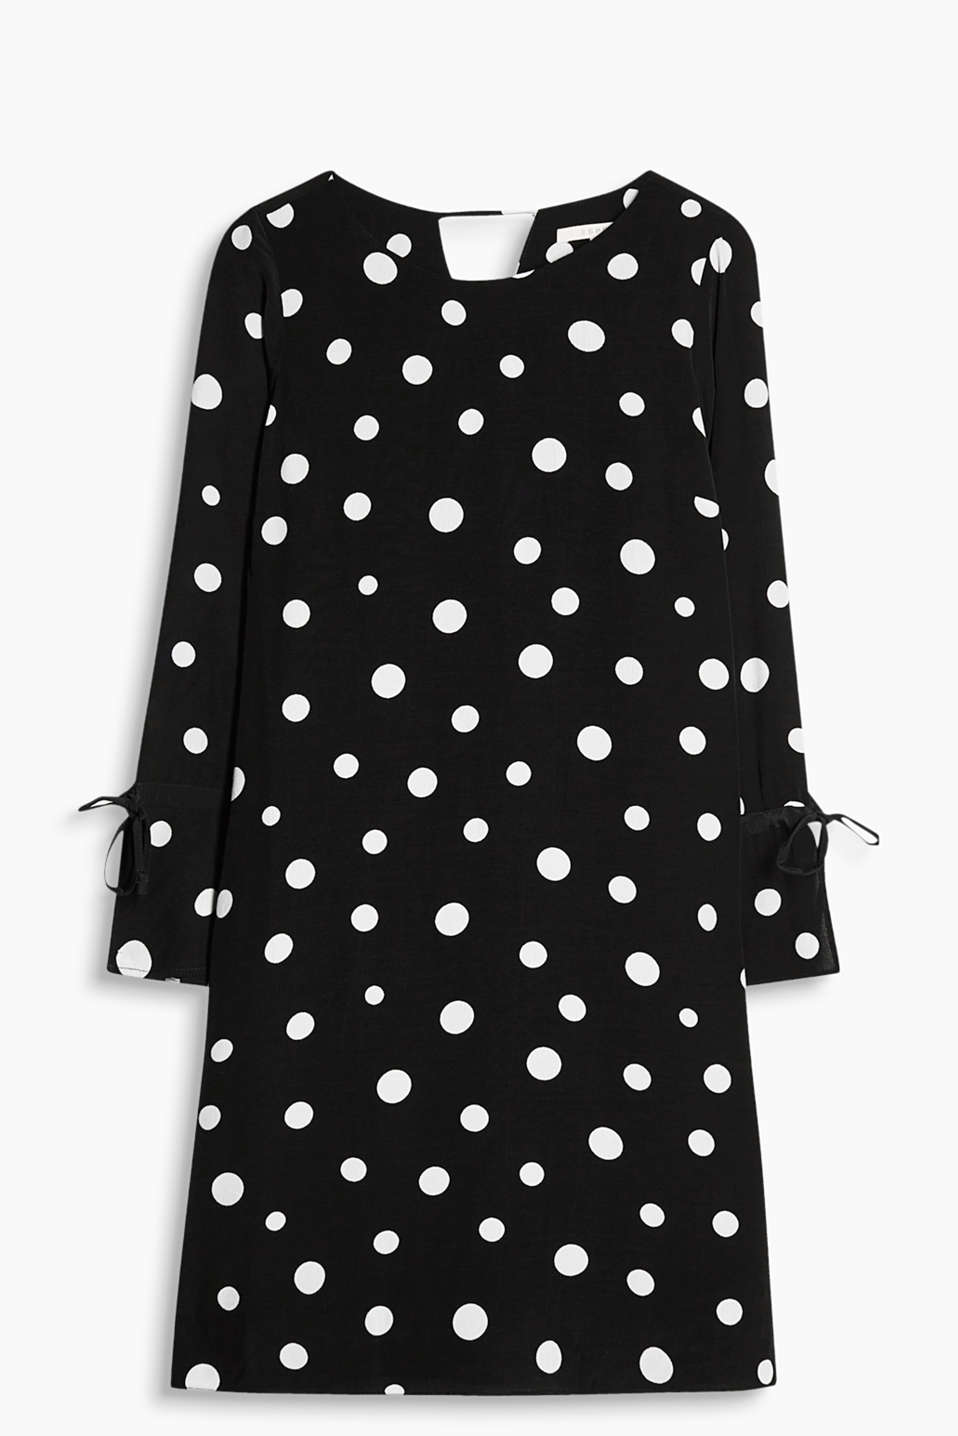 Show off your polka dots! Long sleeve dress with a silky shimmer and a pretty polka dot print